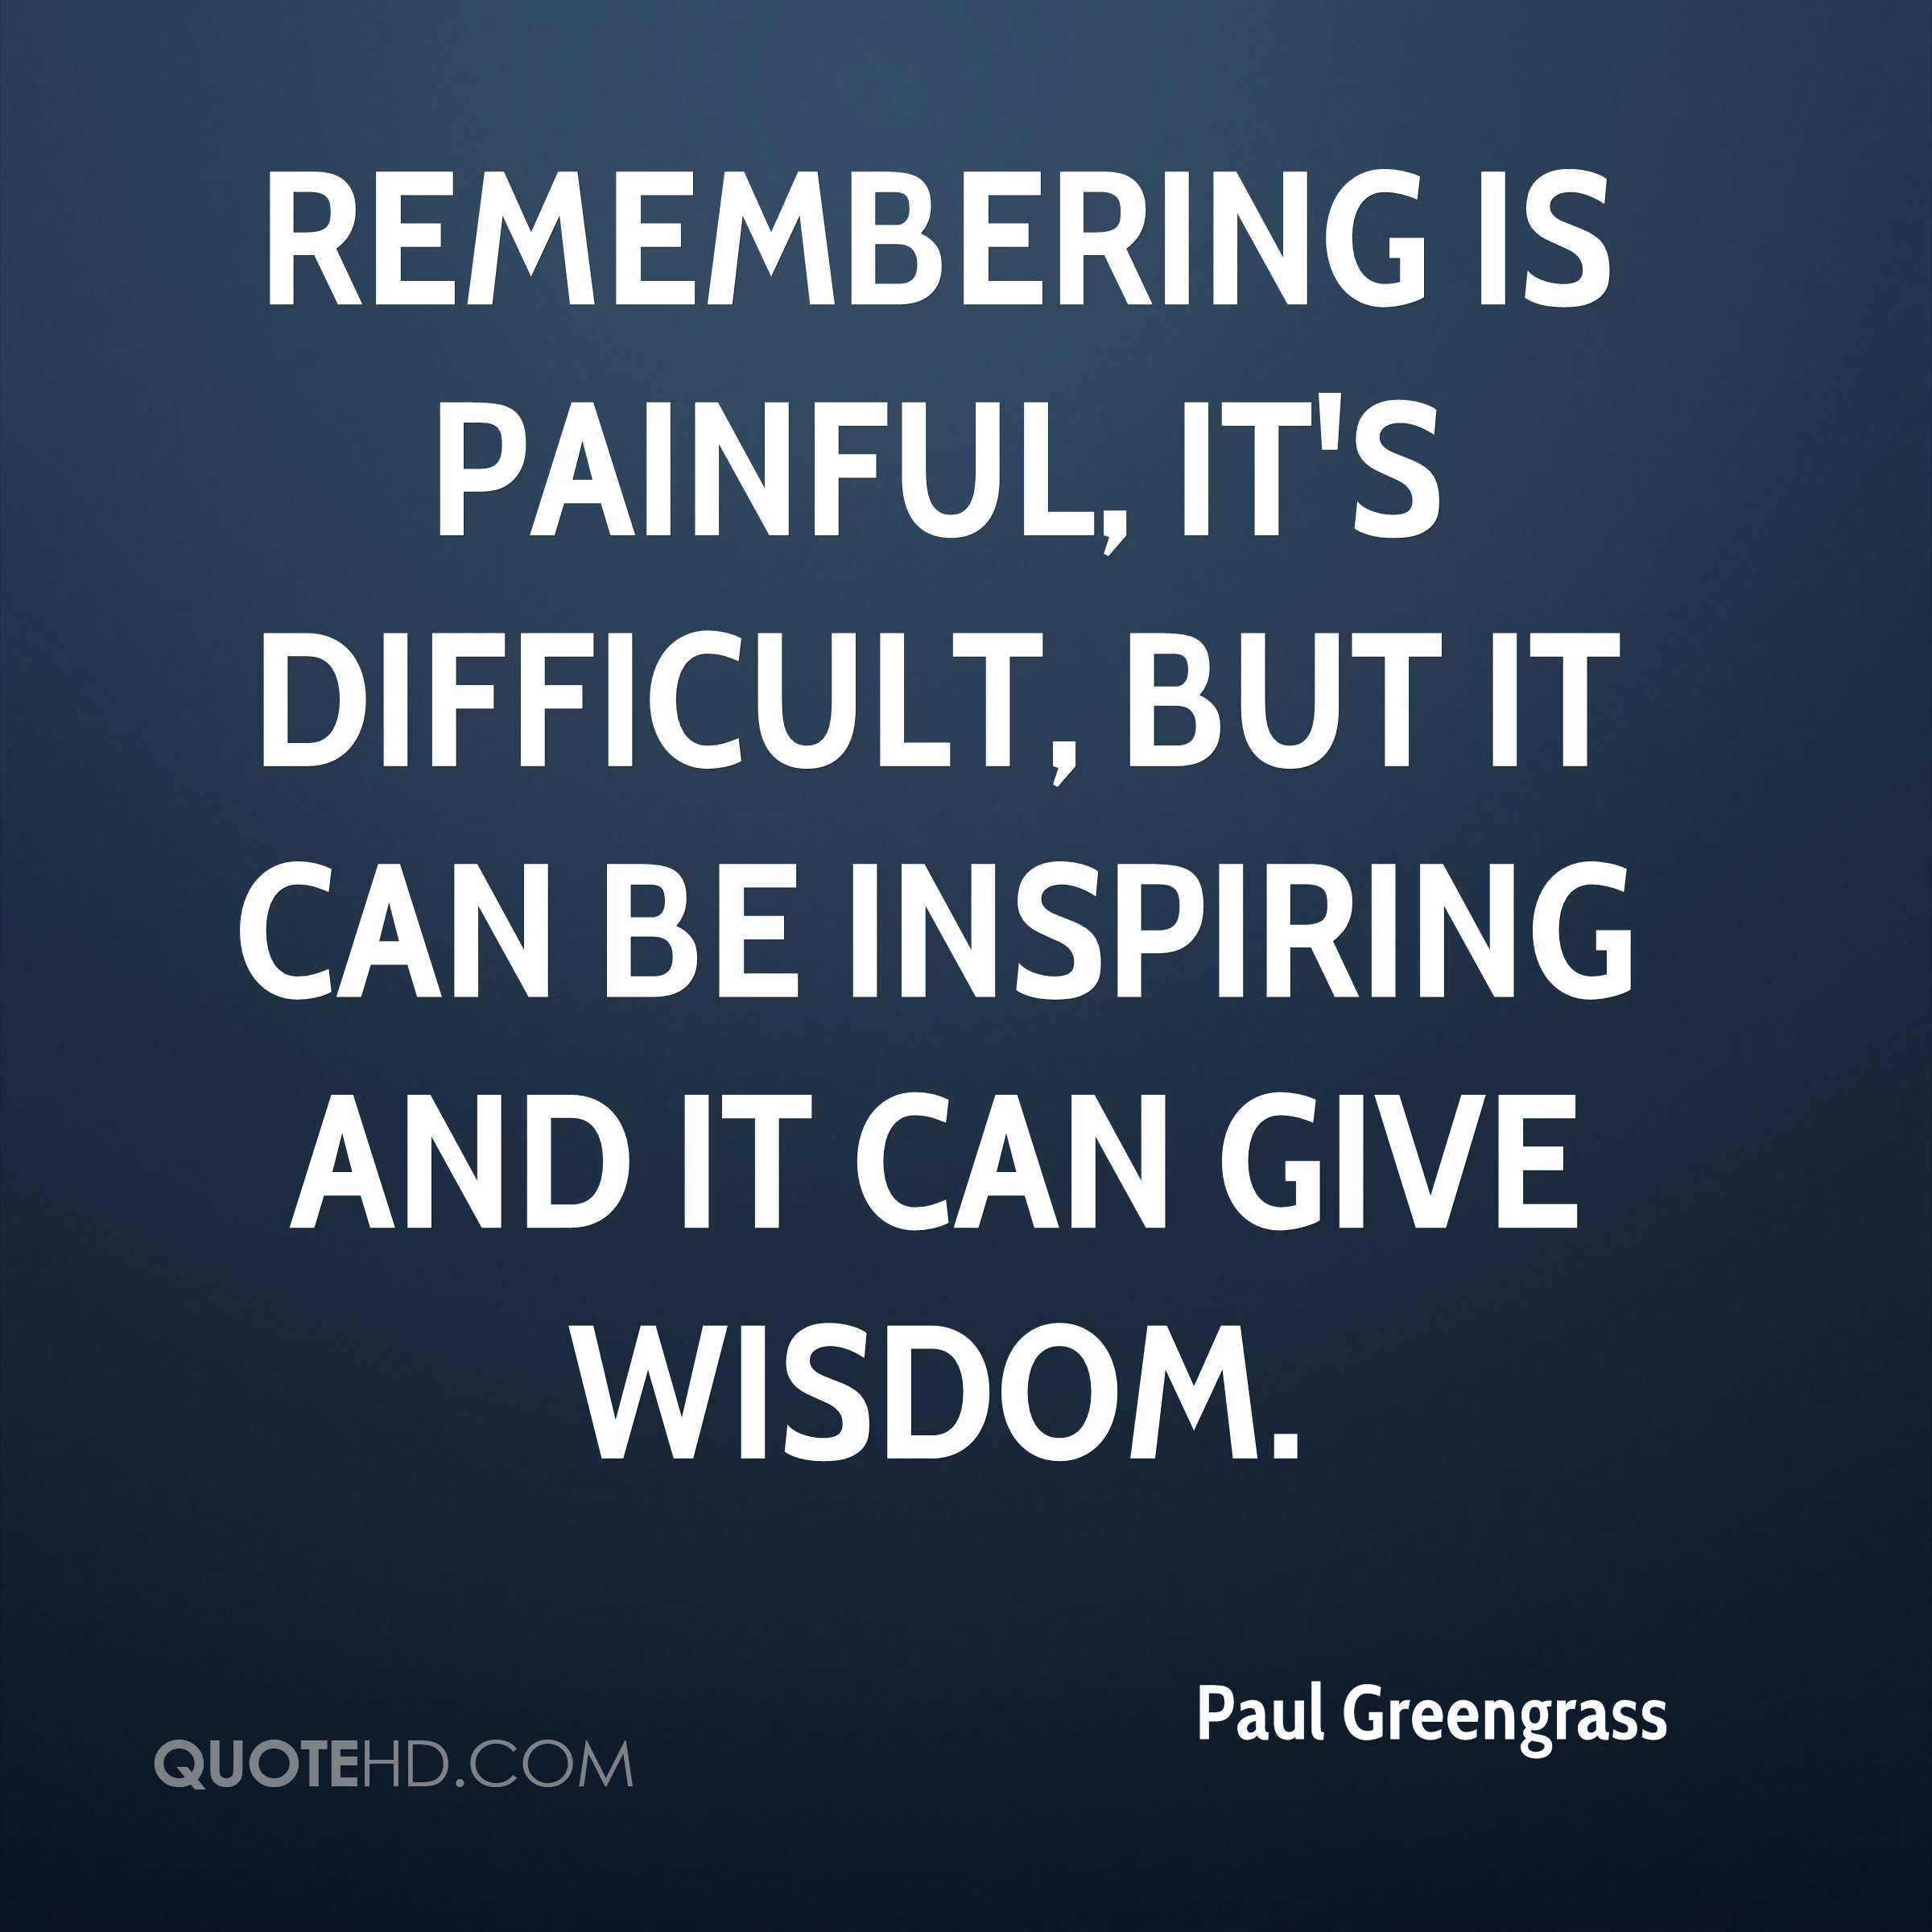 Remembering is painful, it's difficult, but it can be inspiring and it can give wisdom.